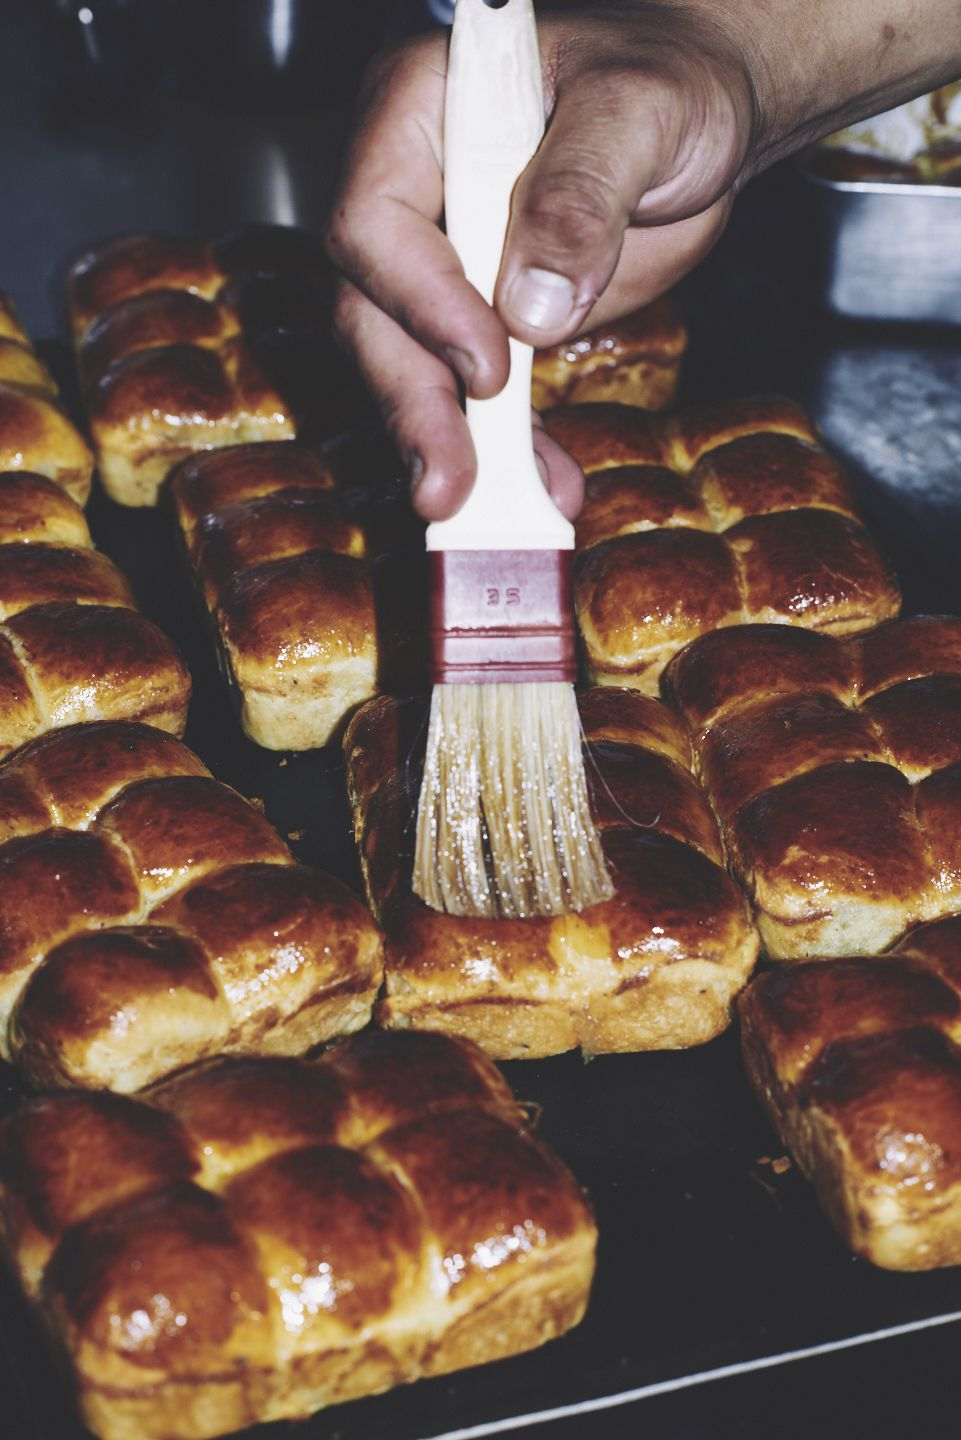 Brioche being glazed for service at two Michelin star restaurant Core by Clare Smyth in Notting Hill, London